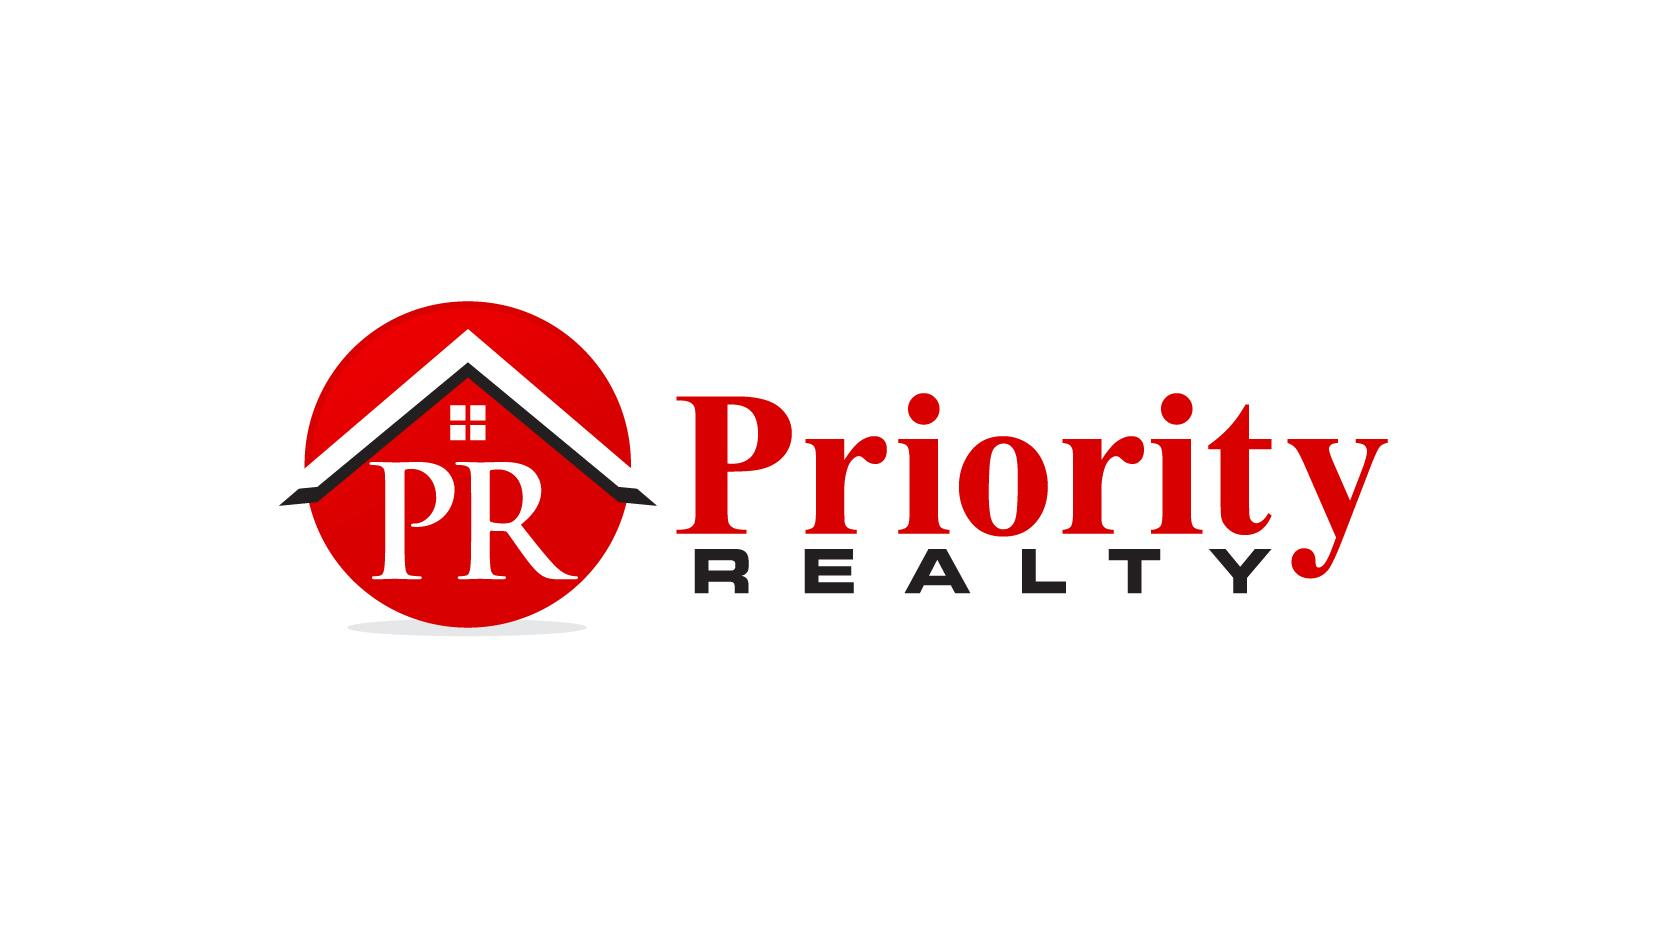 Priority Realty